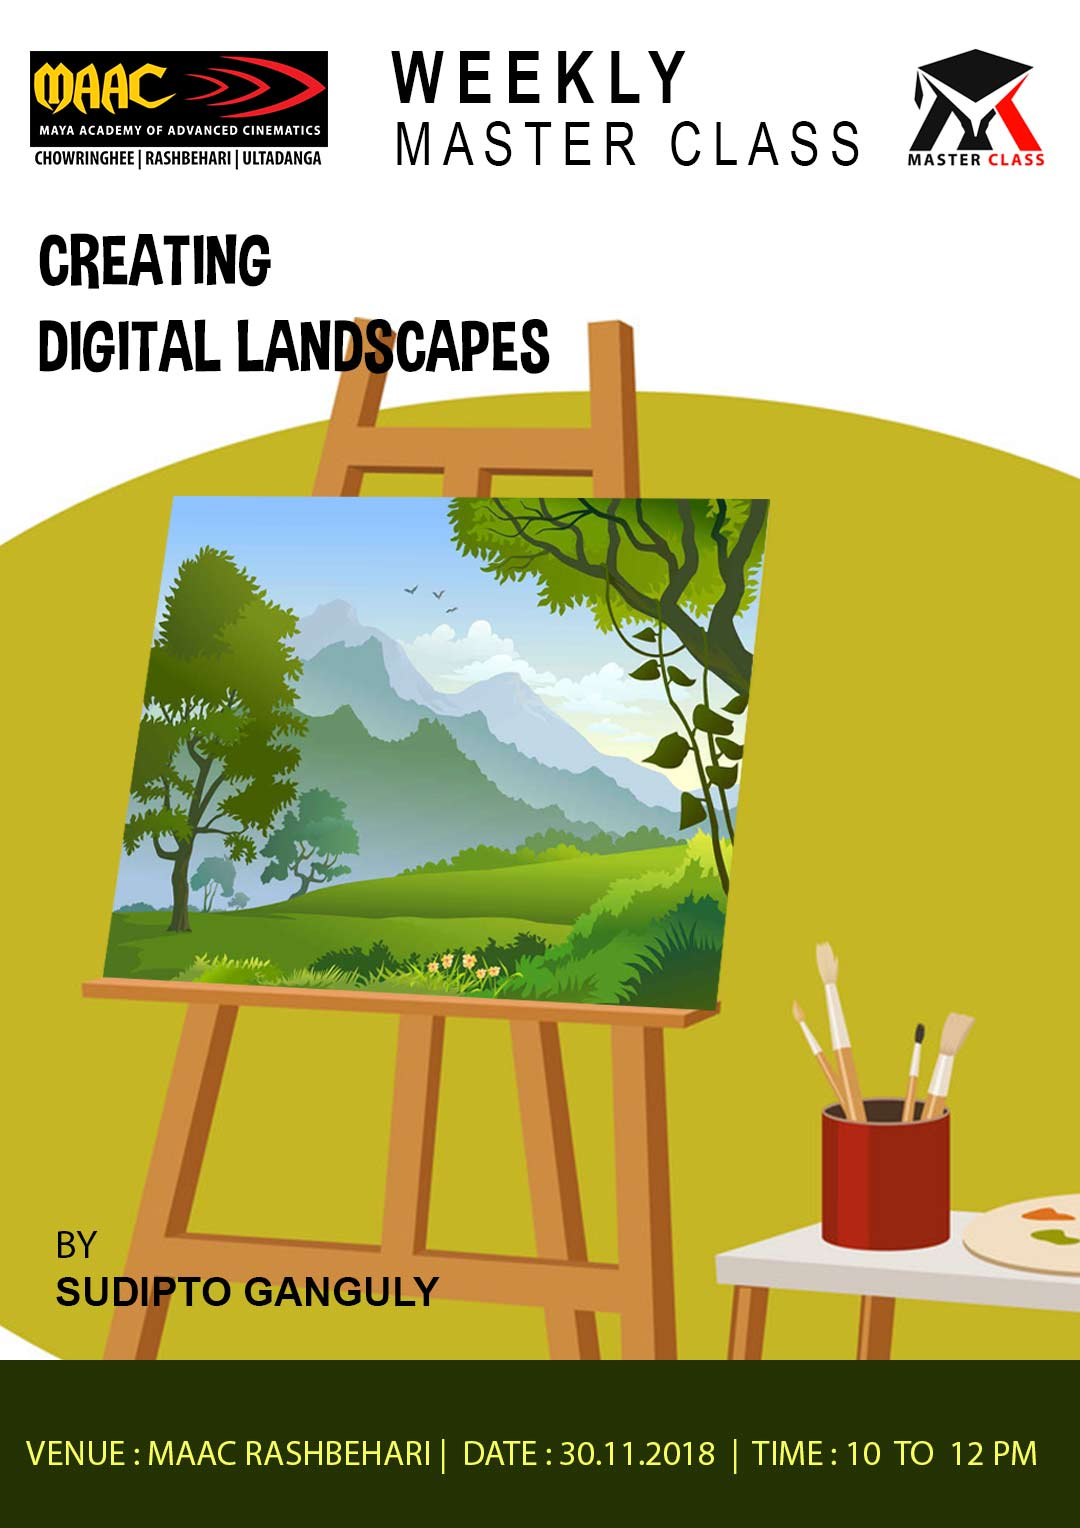 Weekly Master Class on Creating Digital Landscapes